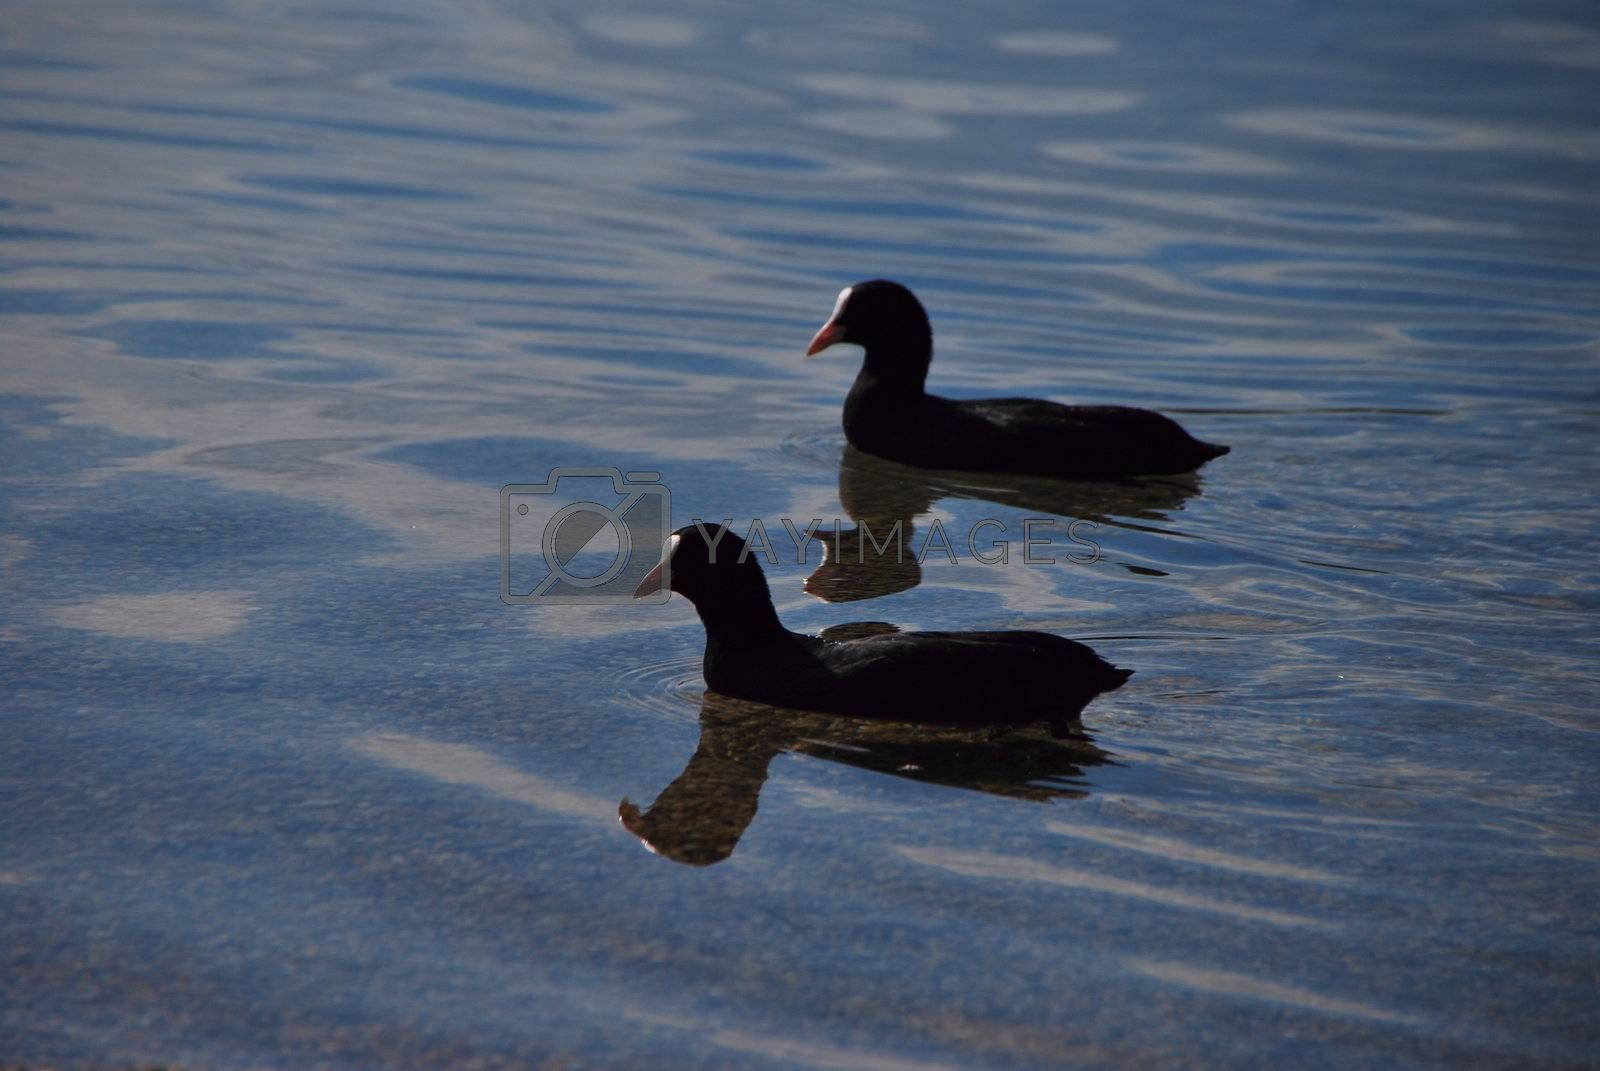 two ducks in the water with shadow